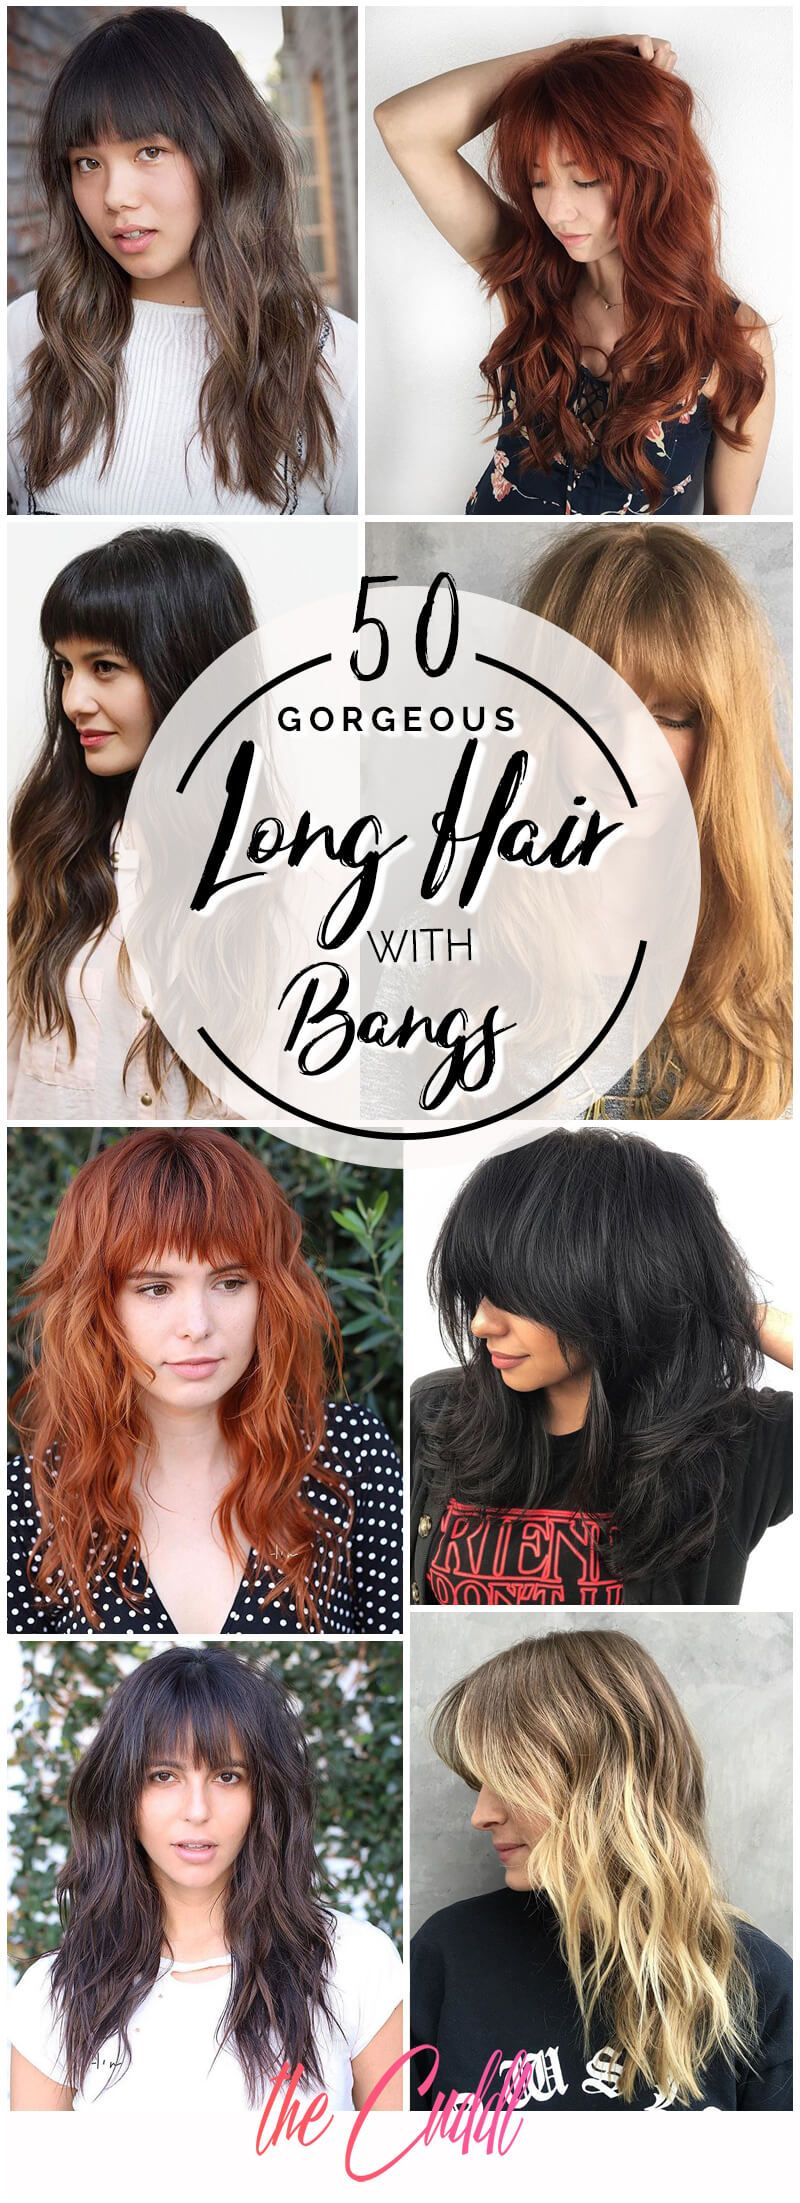 50 Fun Fresh Ways To Style Long Hair With Bangs Long Hair With Bangs Hairstyles With Bangs Long Hair Styles